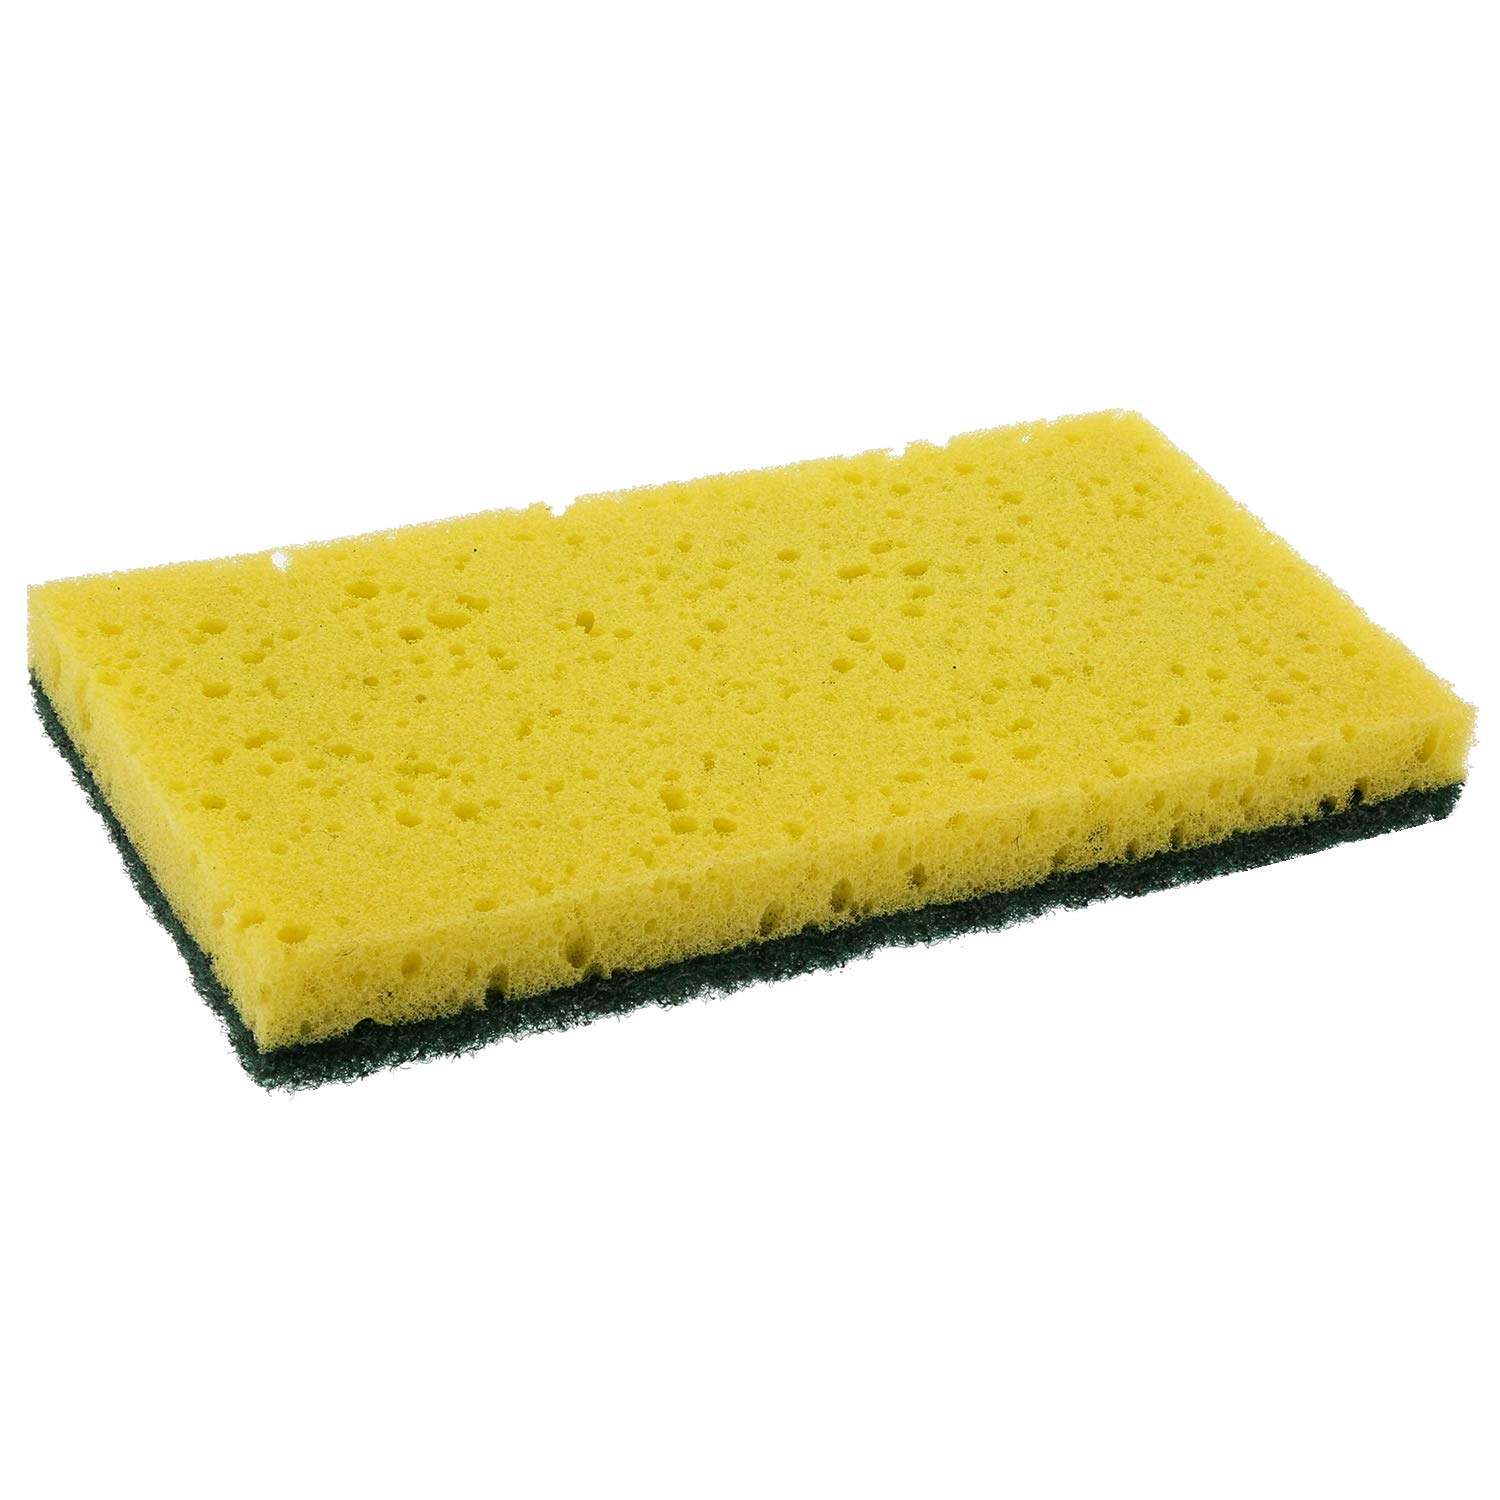 Royal Scouring Pad/Sponge Combo, Case of 48